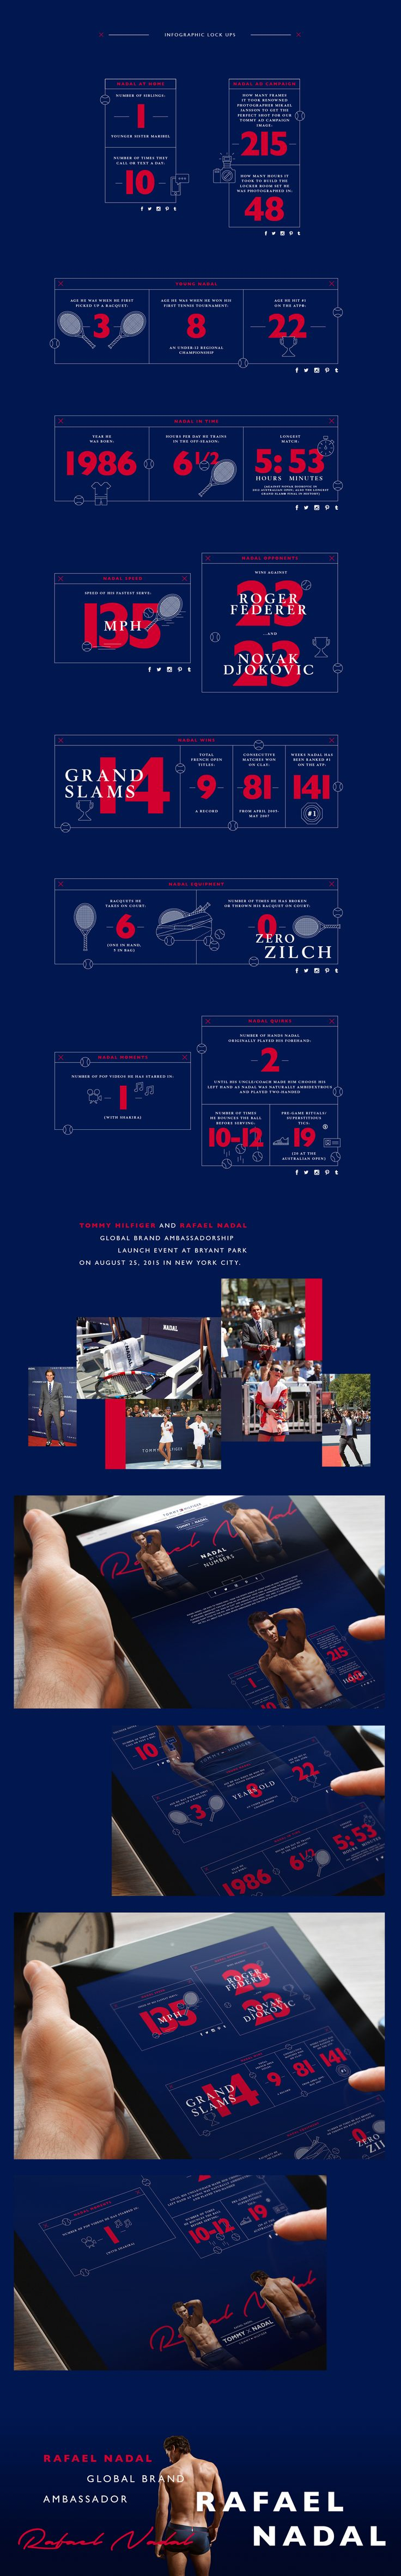 Check out the live info graphic (US only):http://usa.tommy.com/shop/en/thb2cus/sports-nadal-numbers?icid=blog-LP:08-24-2015:story:imageAll content and imagery belong to Tommy Hilfiger / Rafael Nadal. © 2015Design Copyright © 2015 STUDIOJQ.